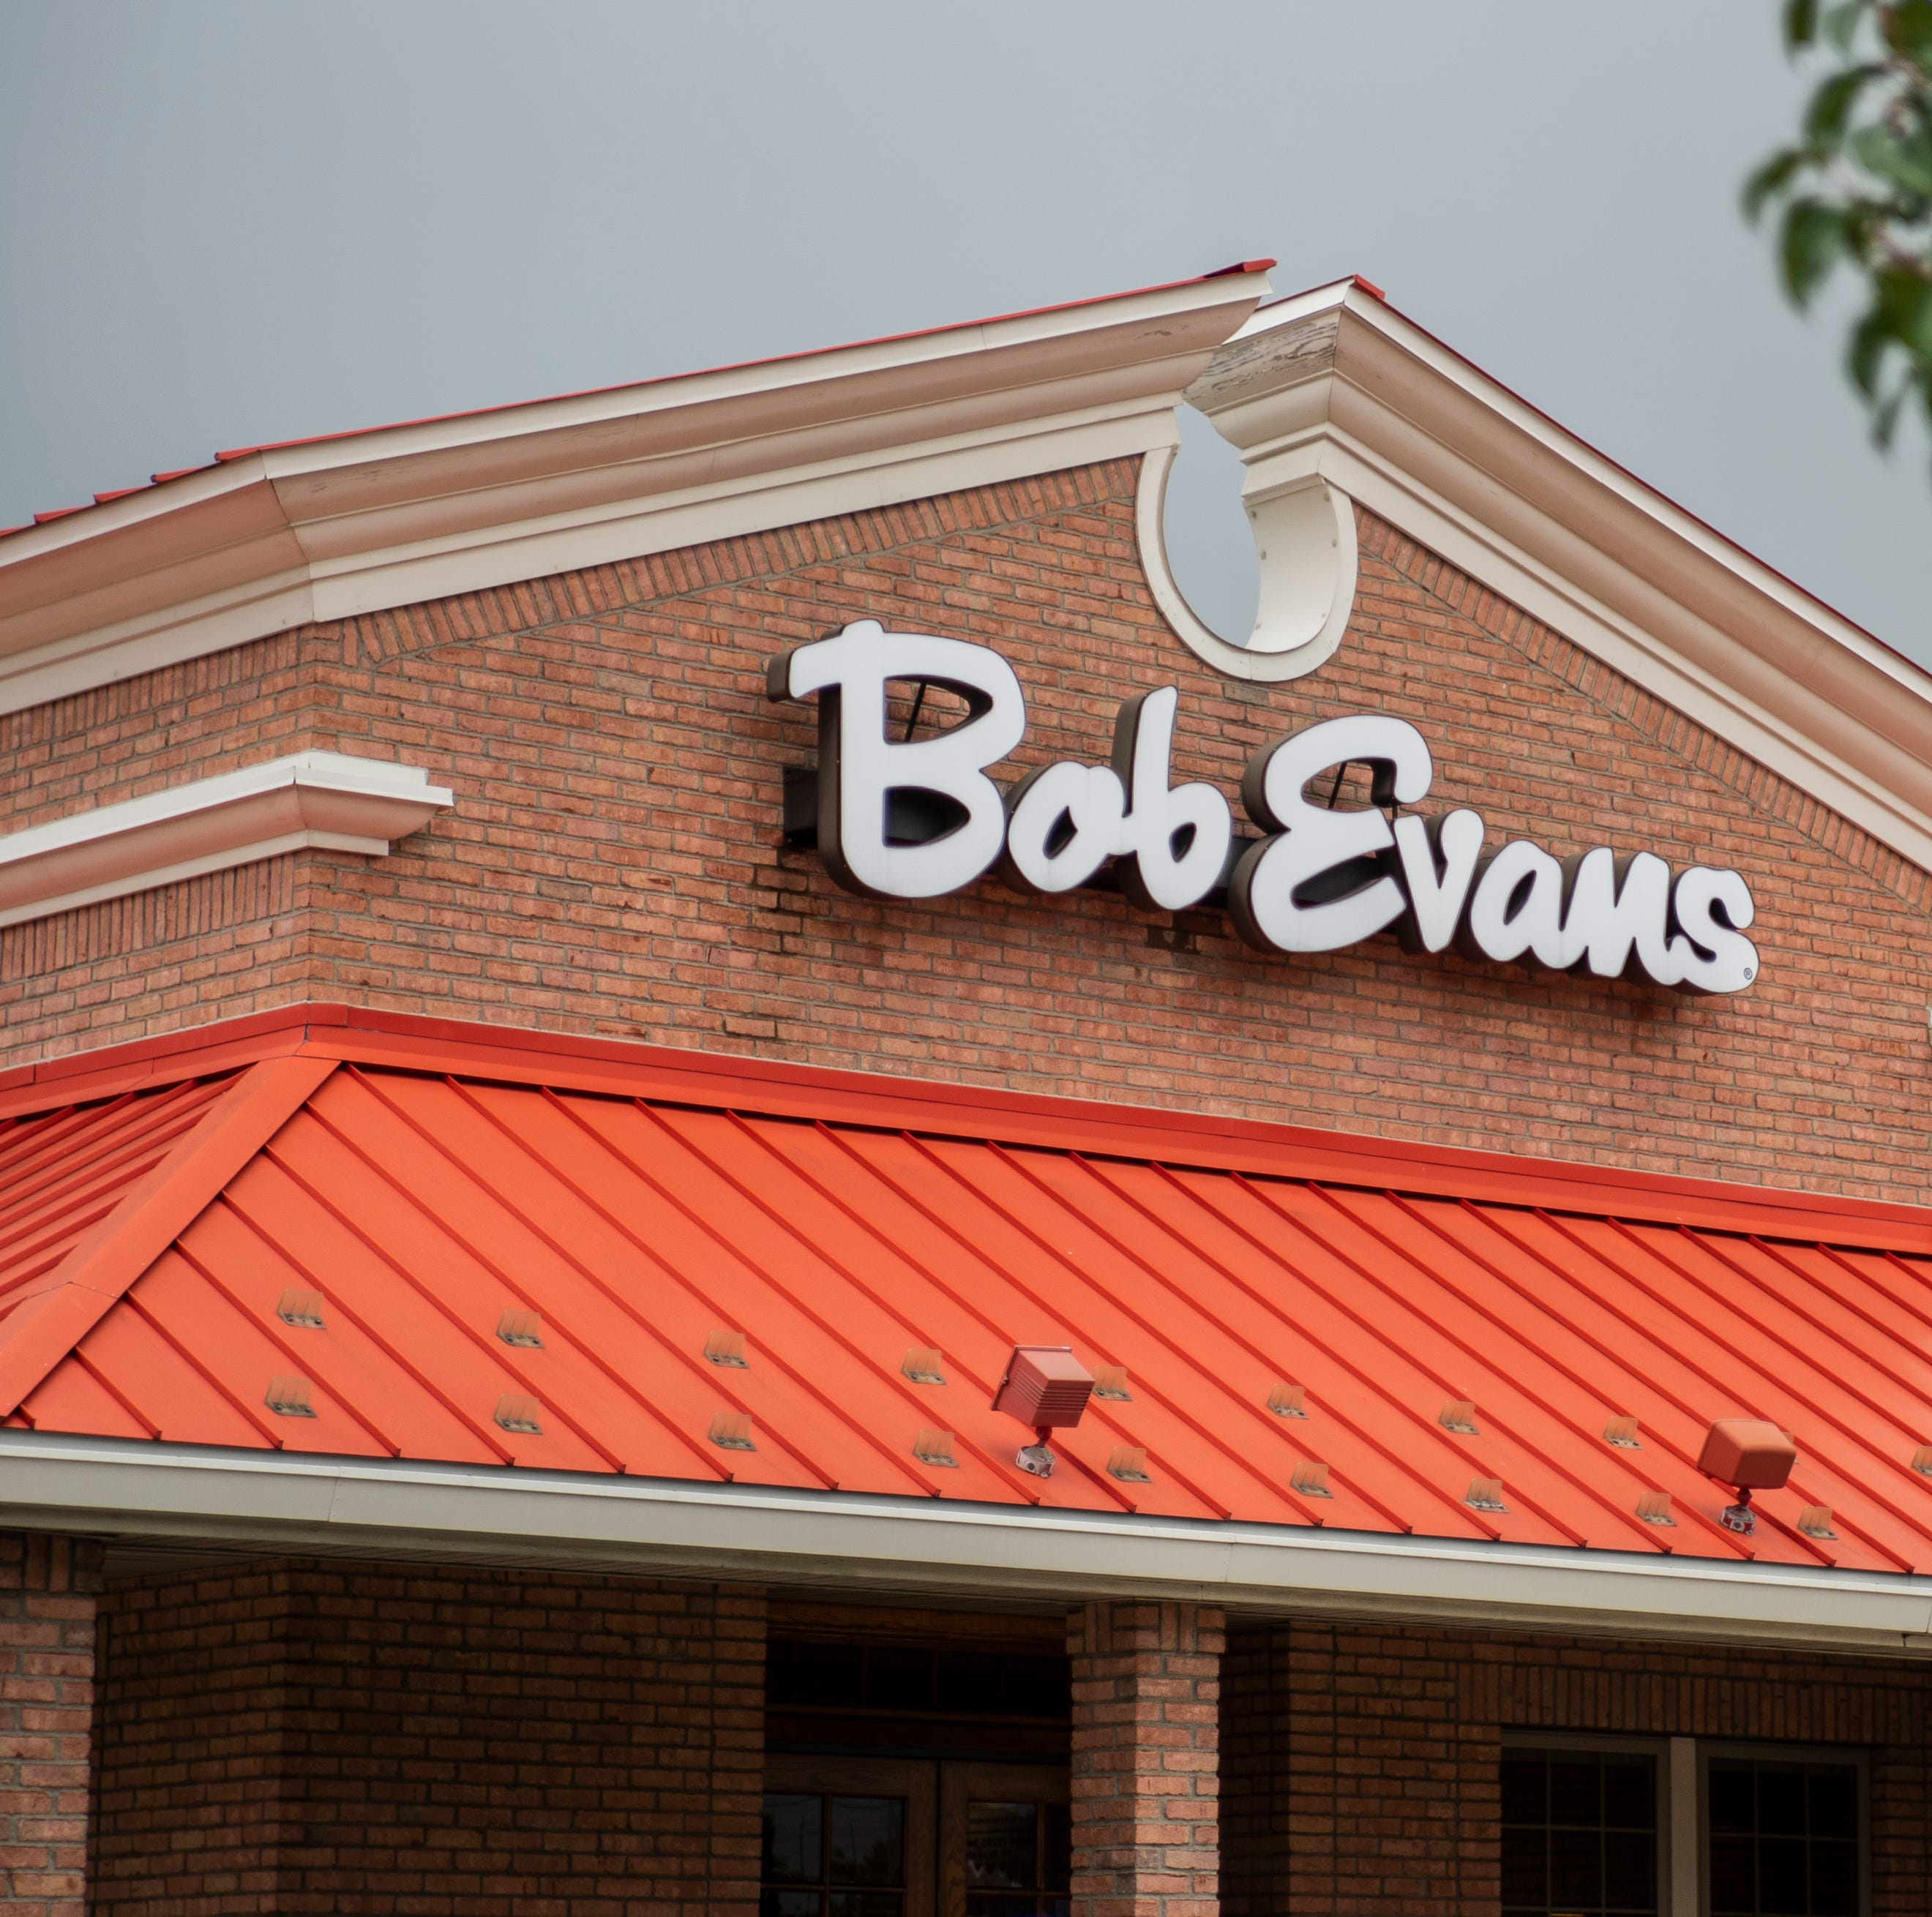 Bob Evans was closed Friday morning, but not for good. Here's what happened